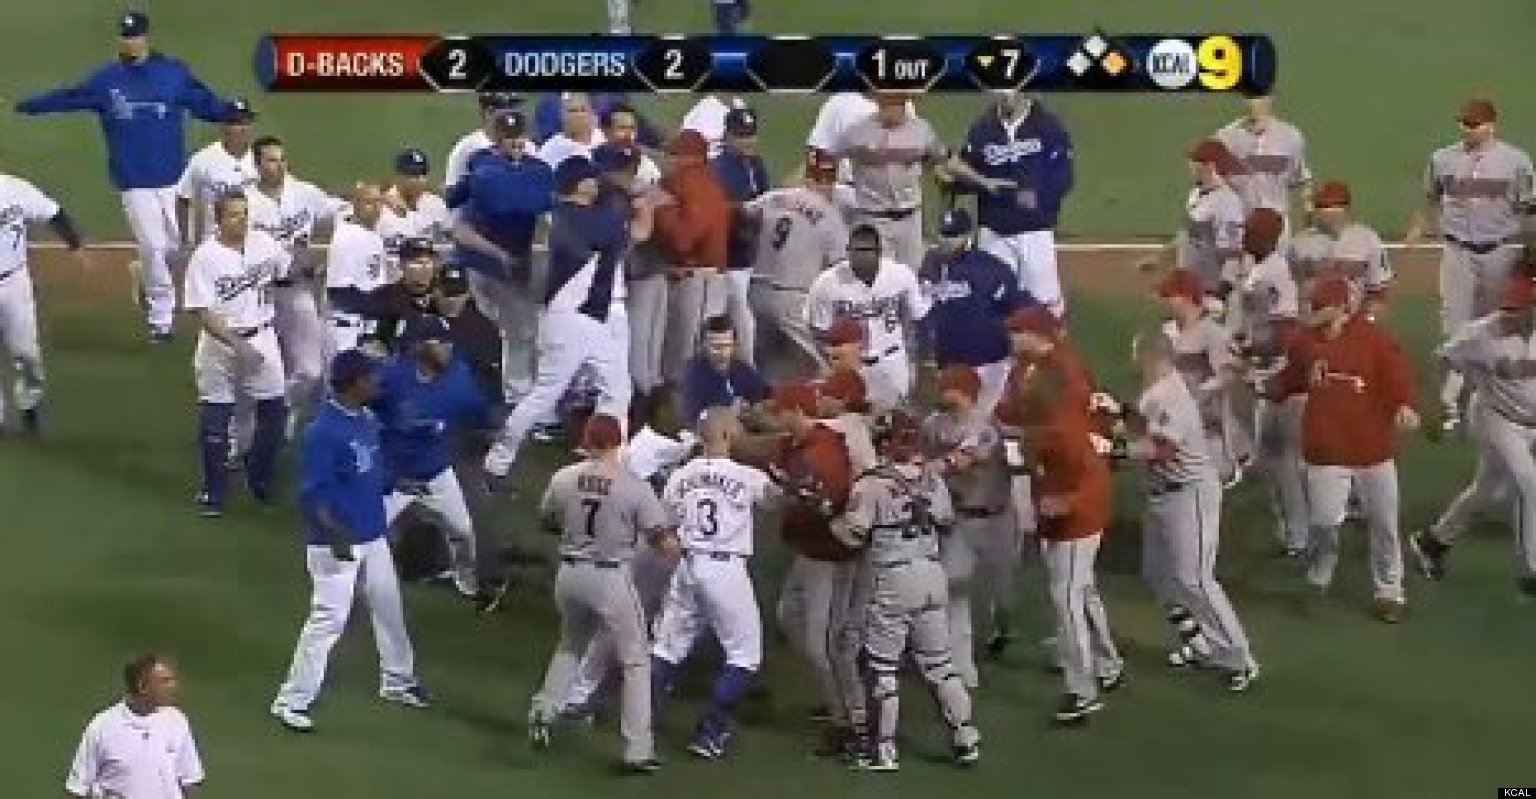 Dodgers and Diamondbacks fight and brawl, receiving suspensions.